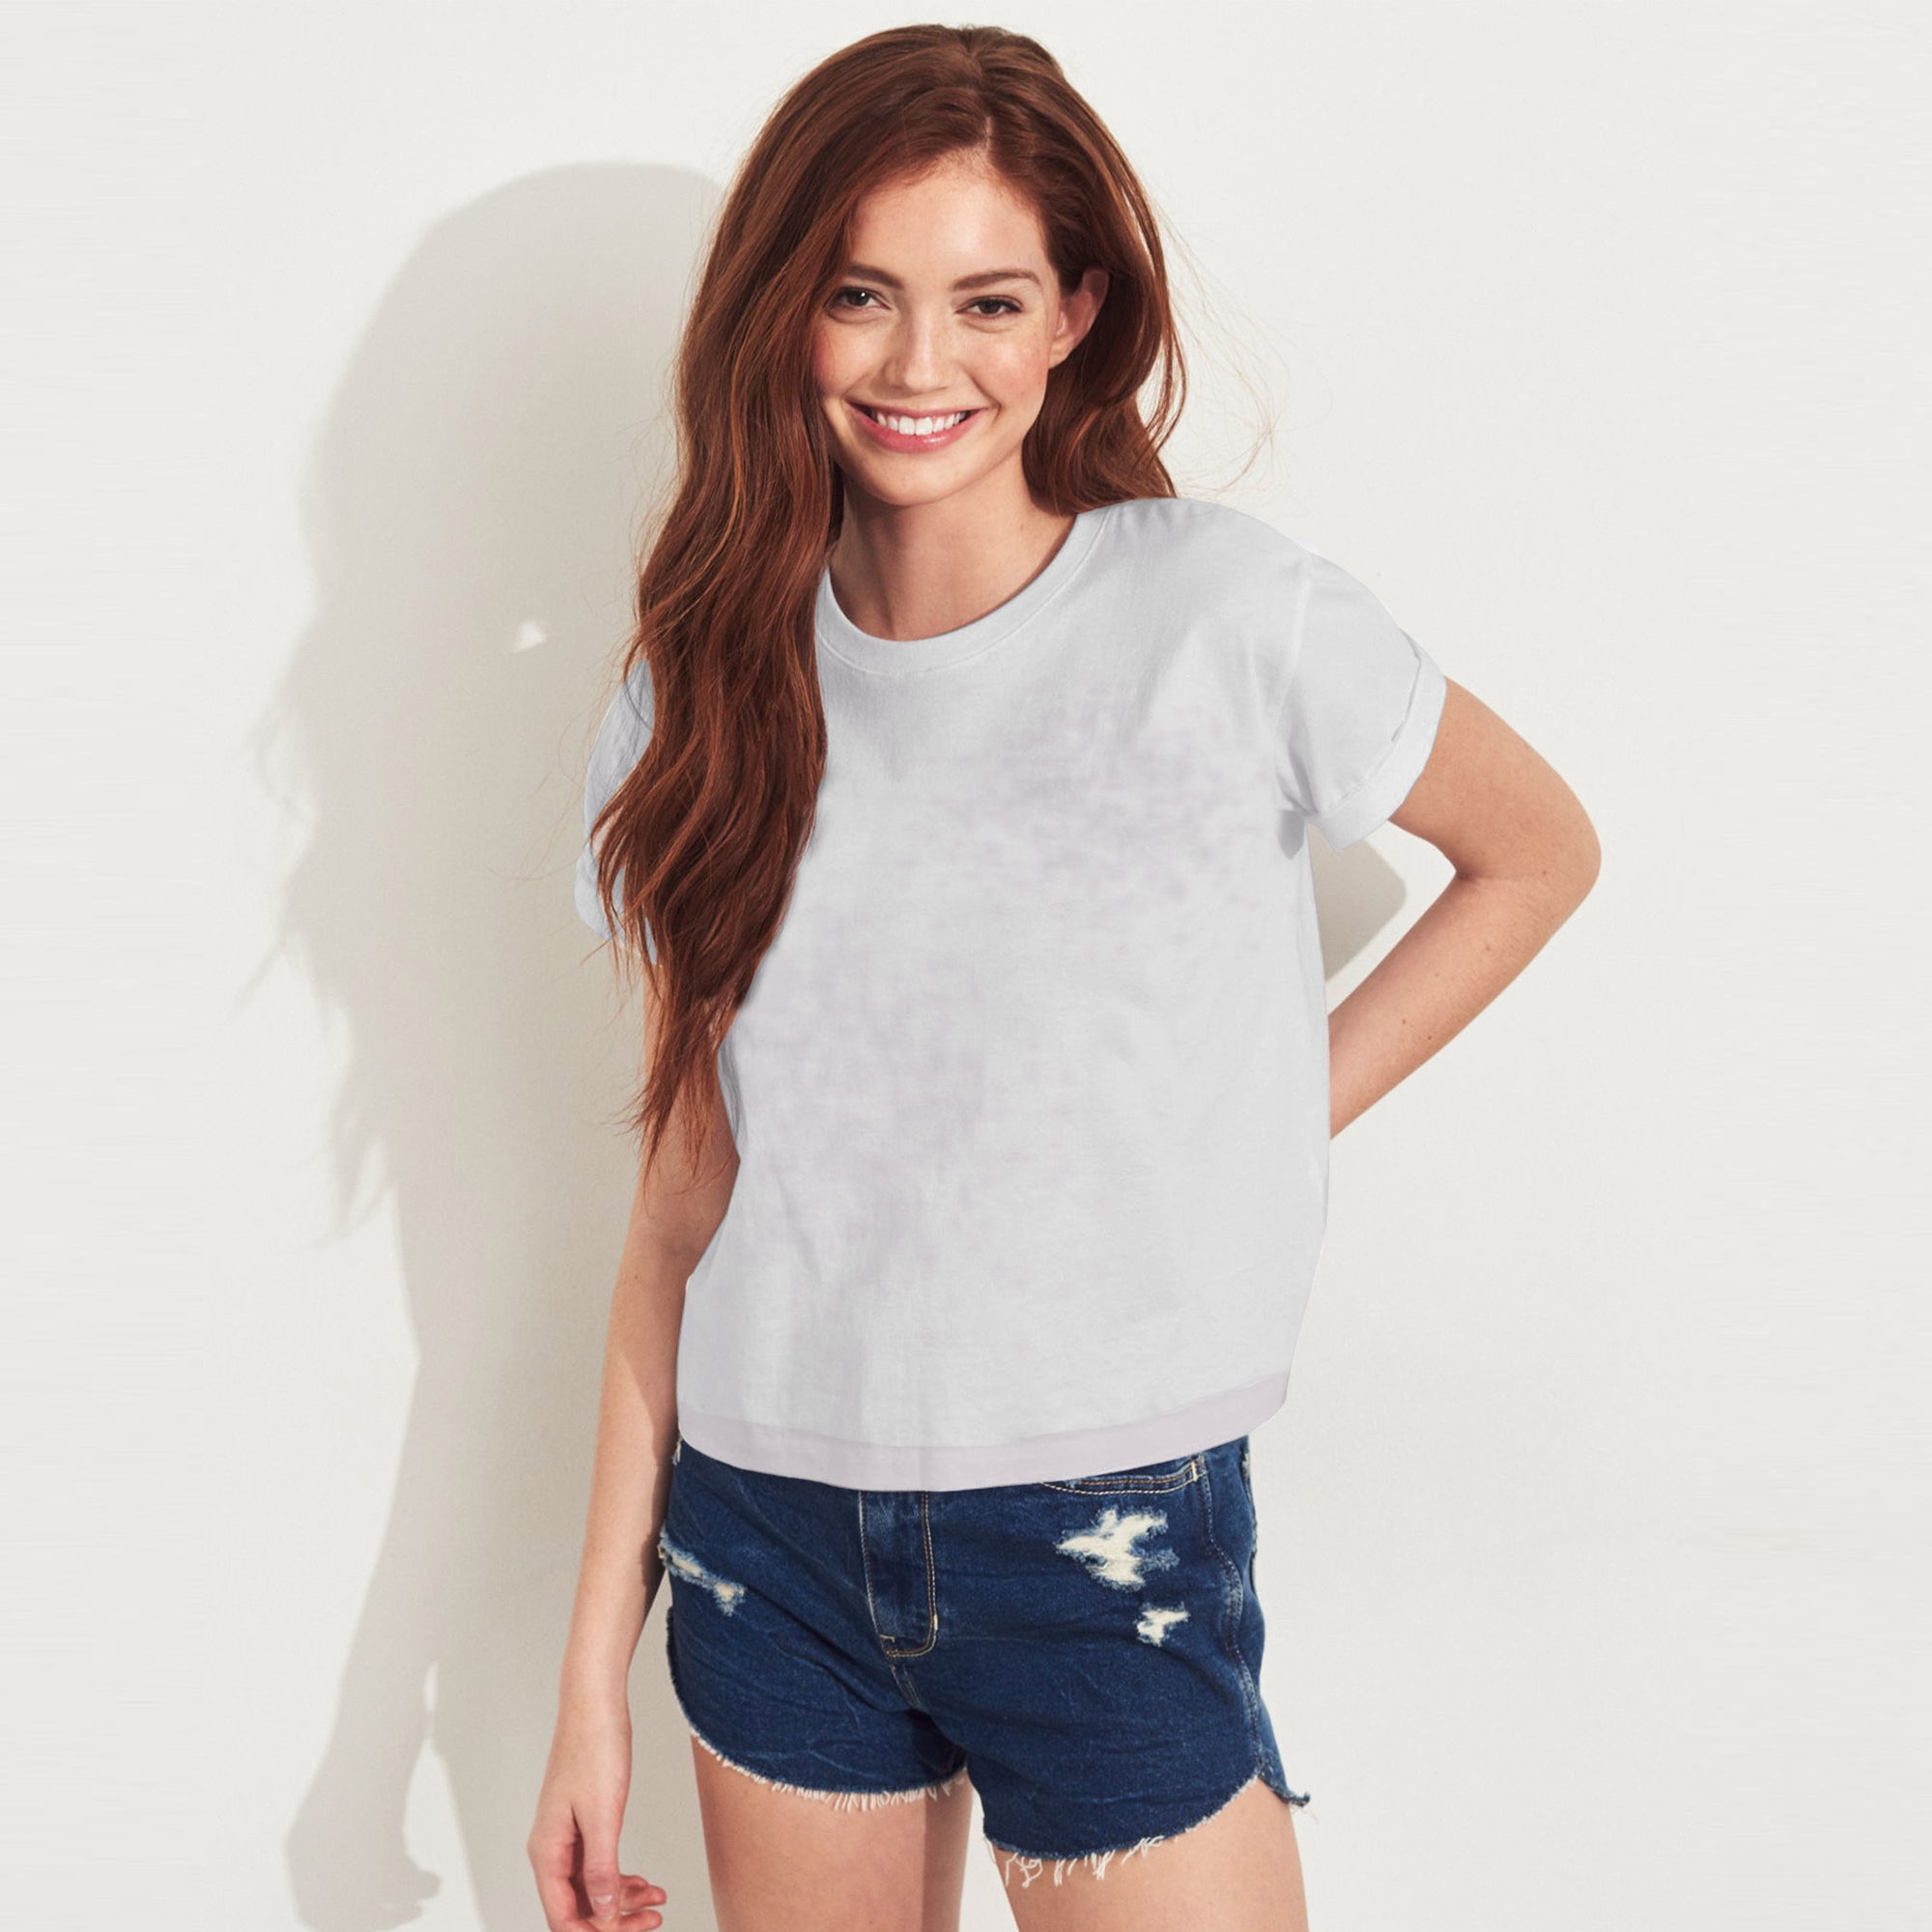 brandsego - Bowie Half Sleeve Stylish Burnout Tee Shirt For Women-Light Grey Faded-BE8468